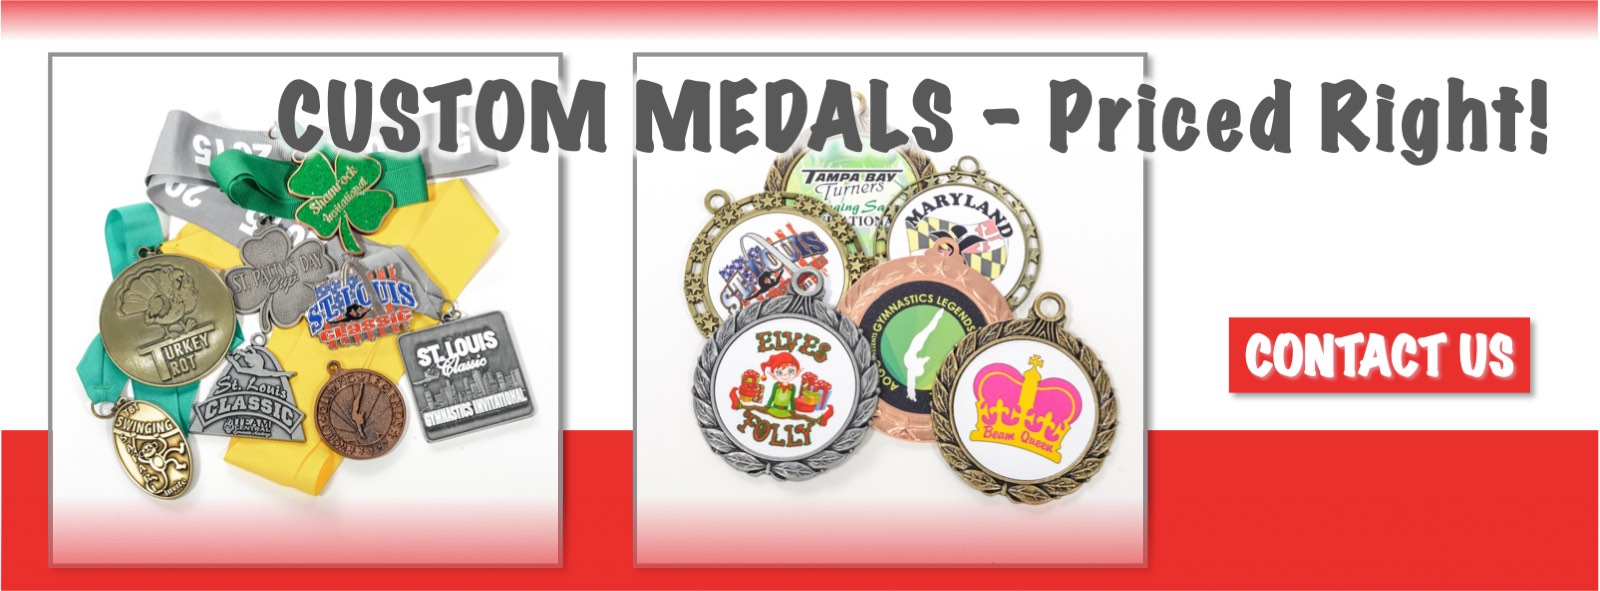 Contact us for all your custom medal needs, for gymnastics or any sport.